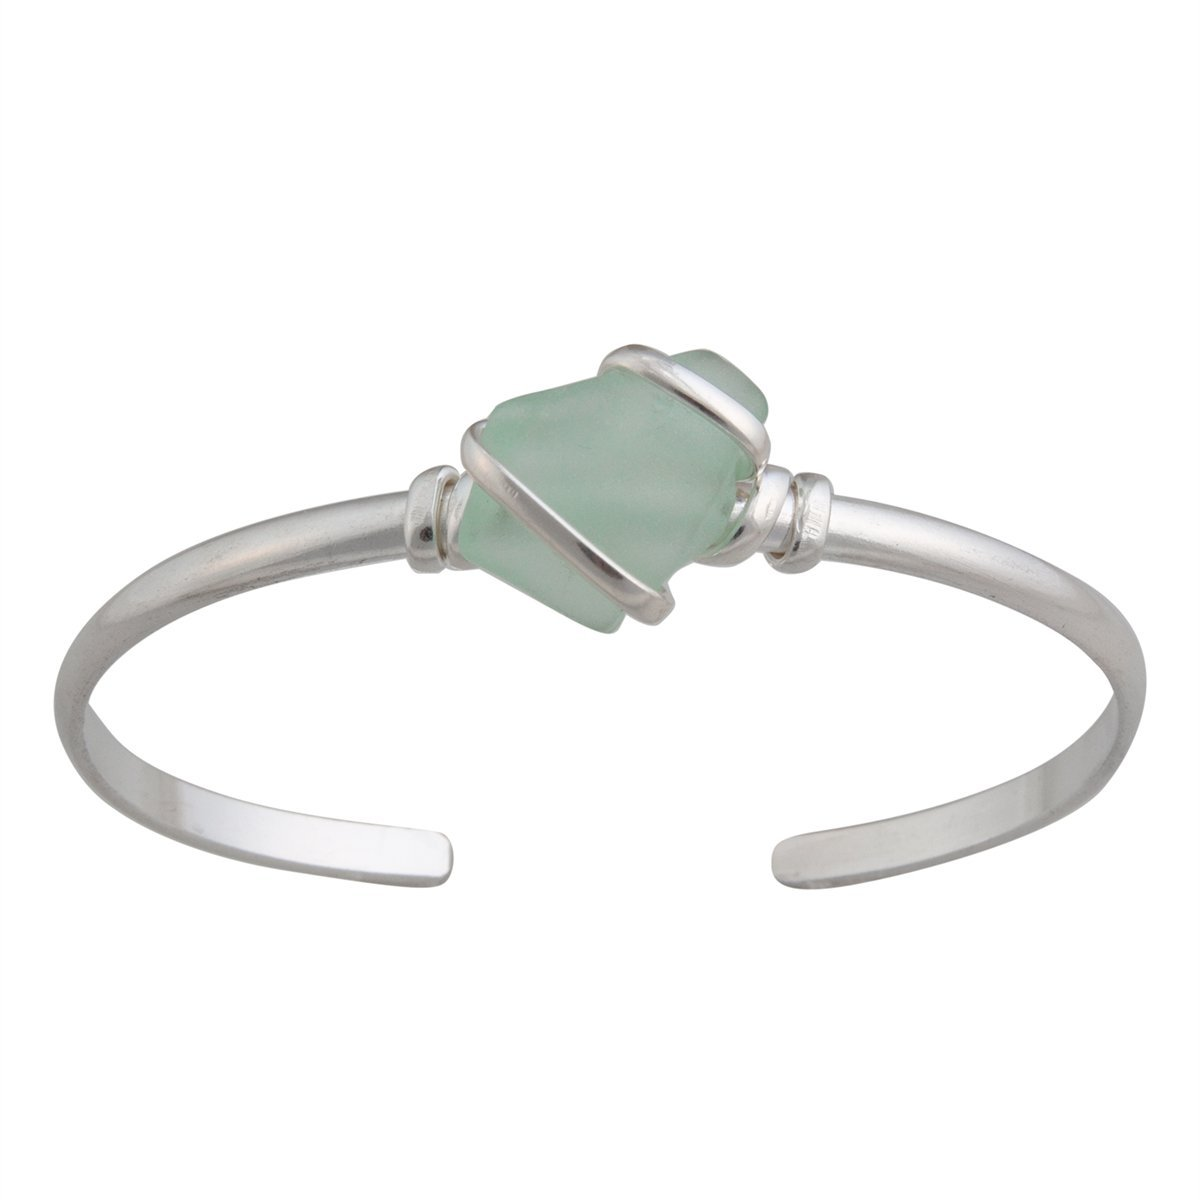 Alpaca Recycled Glass Mini Cuff - Seafoam Green | Charles Albert Jewelry